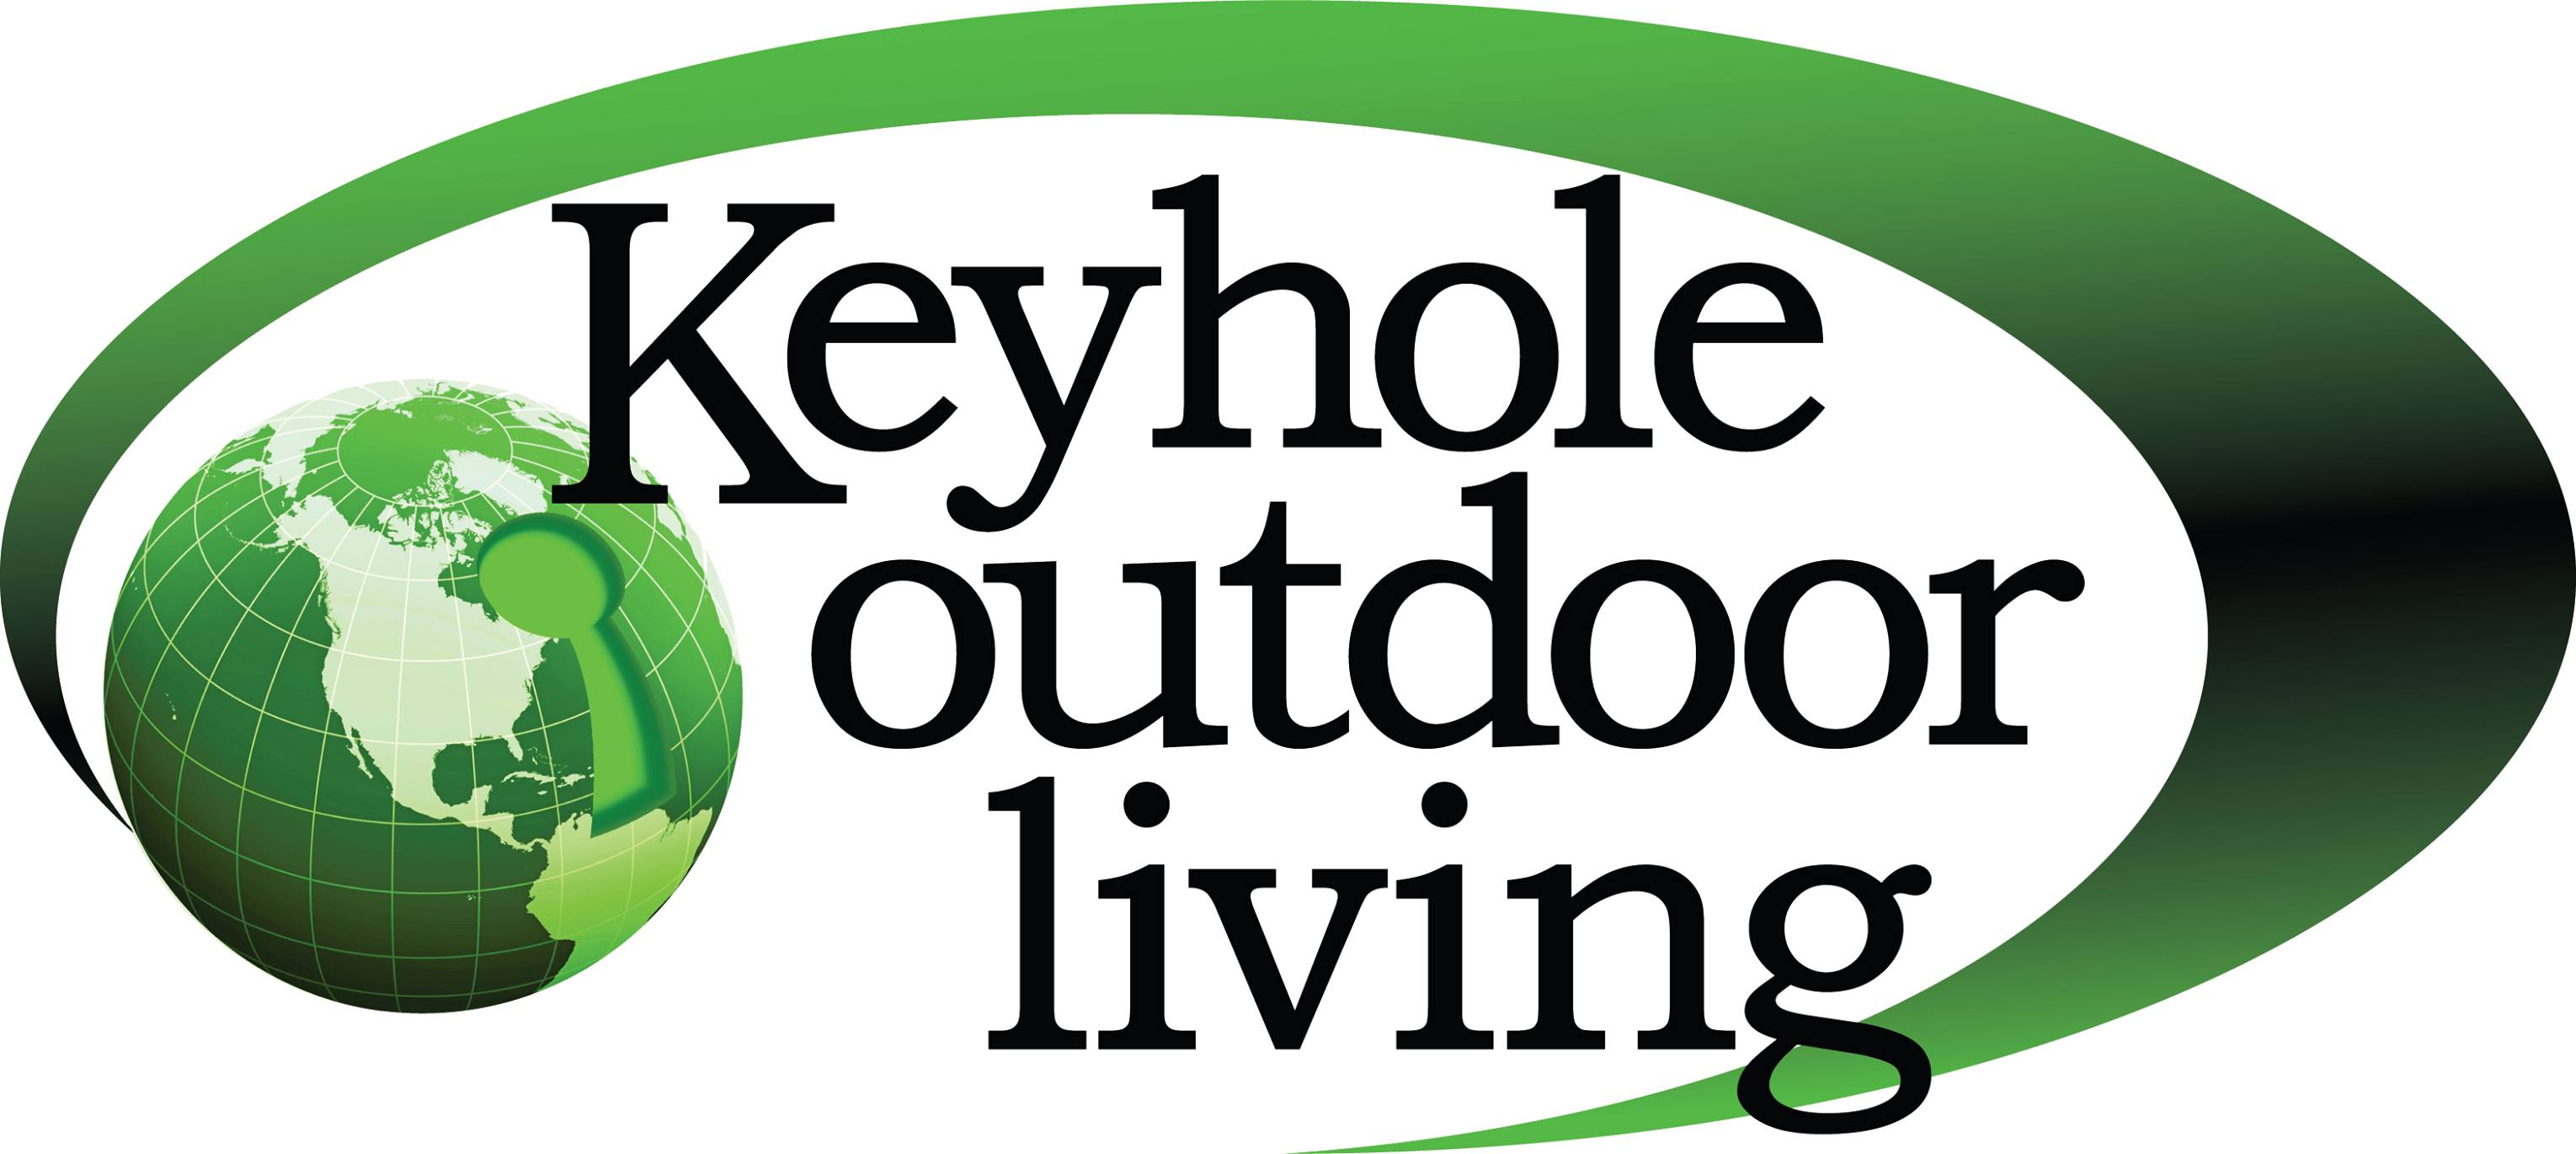 Keyhole Outdoor Living